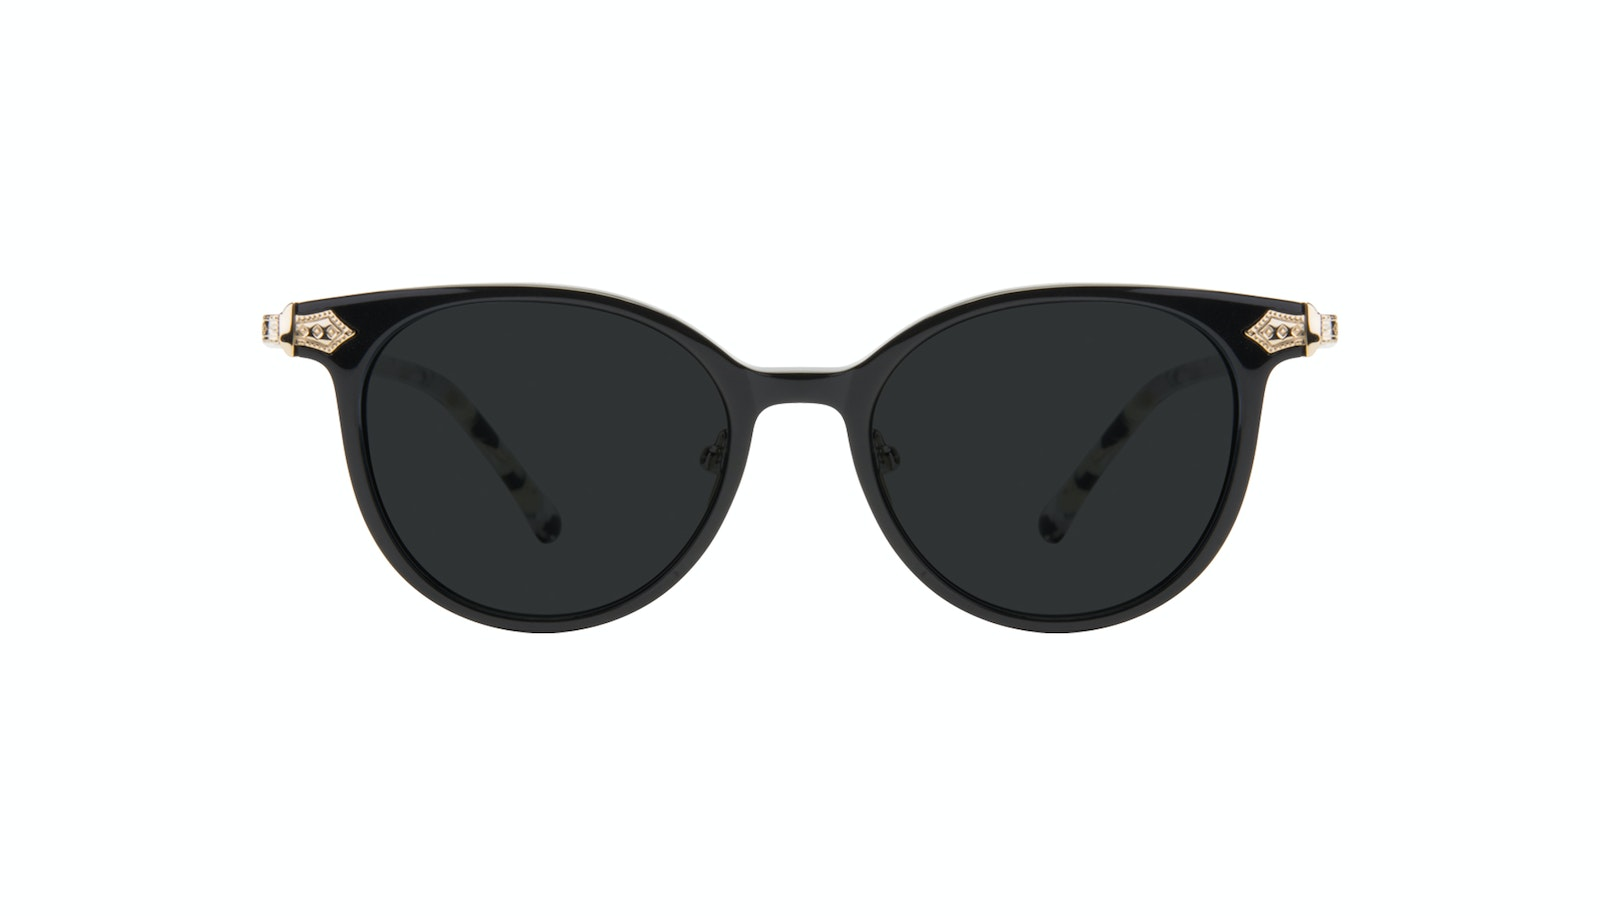 Affordable Fashion Glasses Round Sunglasses Women Gem Onyx Marble